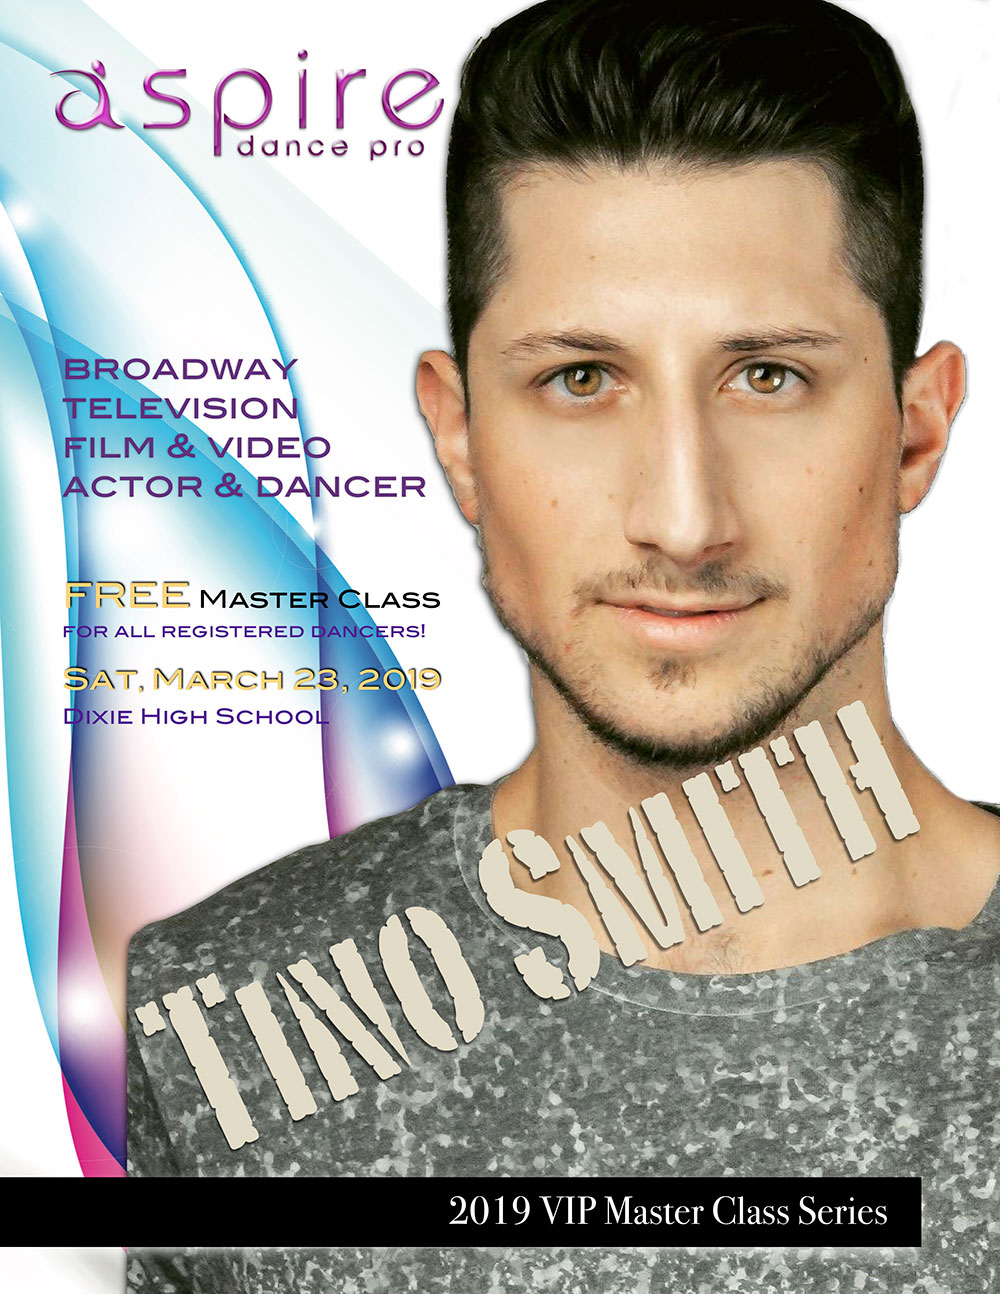 Tino Smith - Aspire Dance Pro Competitions Masterclass Instructor